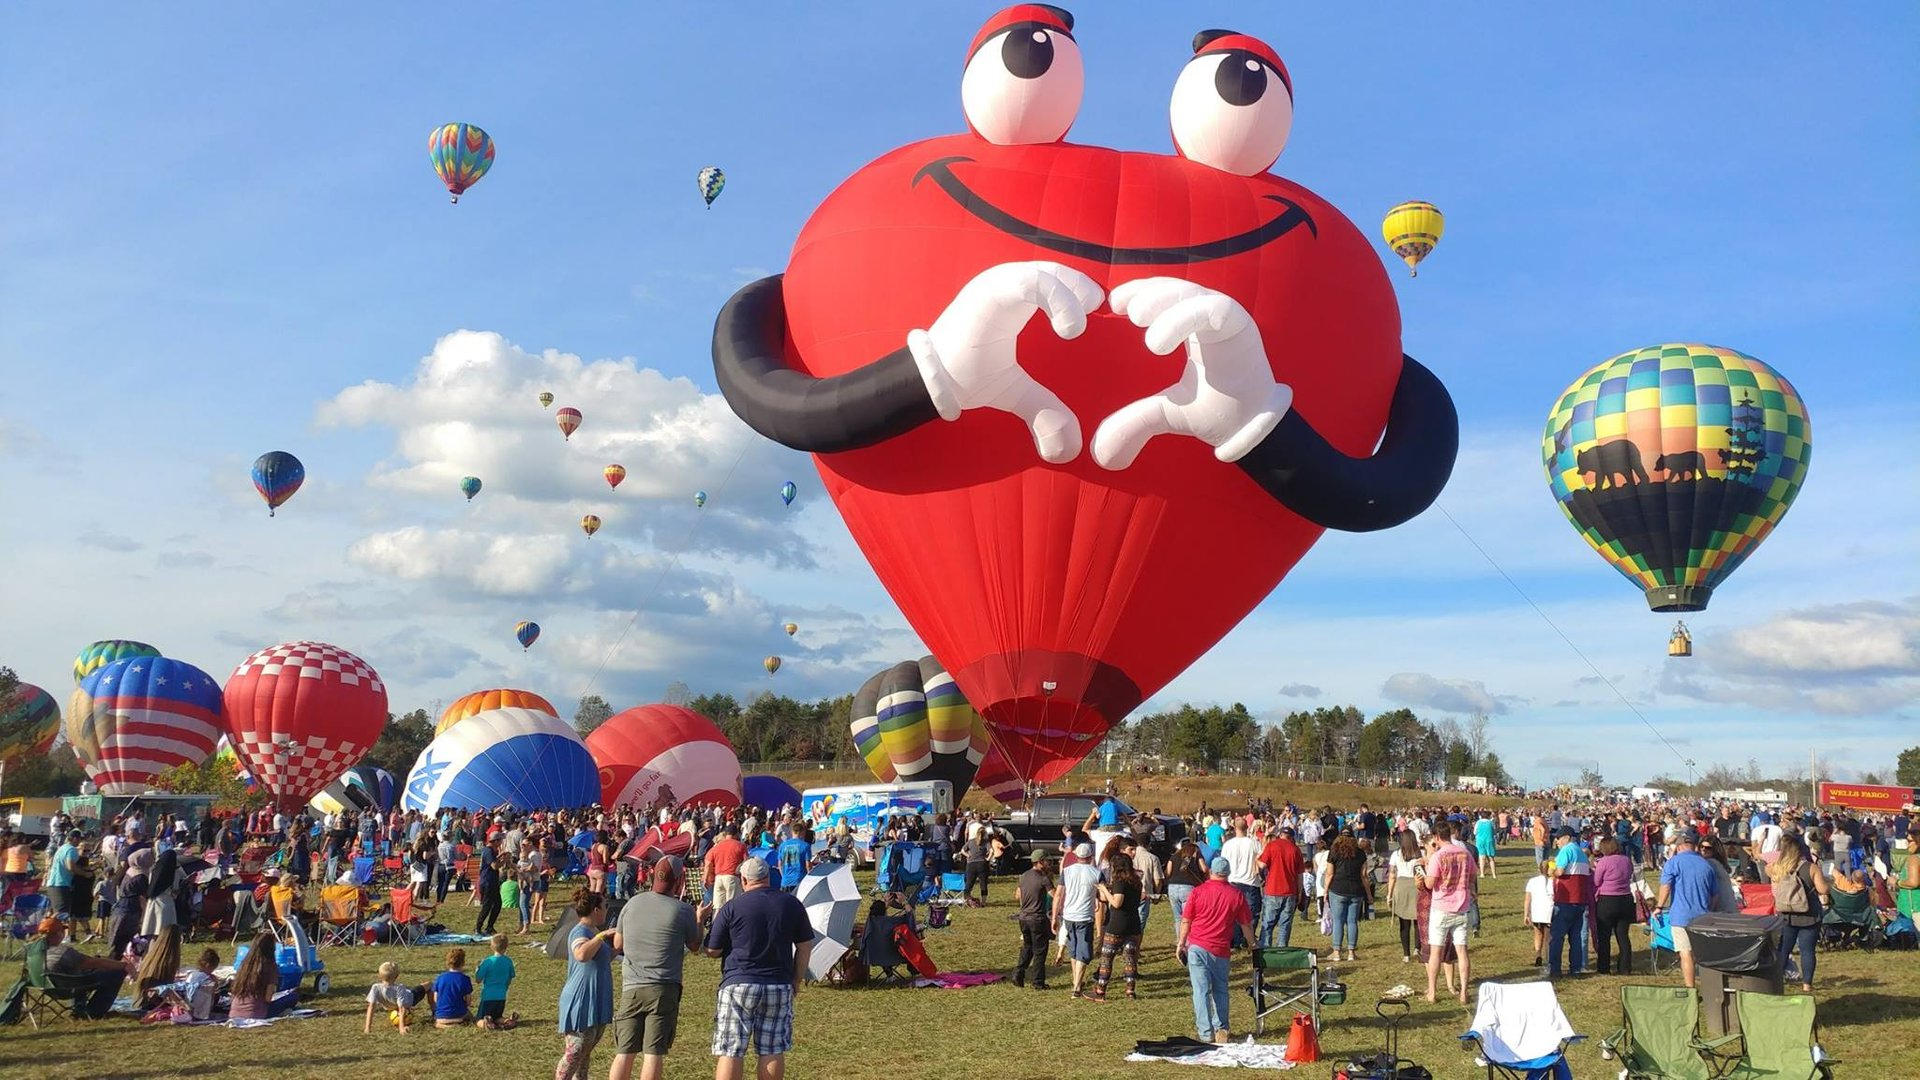 Balloon Festival 2020 Nj.Carolina Balloon Fest 2019 In North Carolina Dates Map